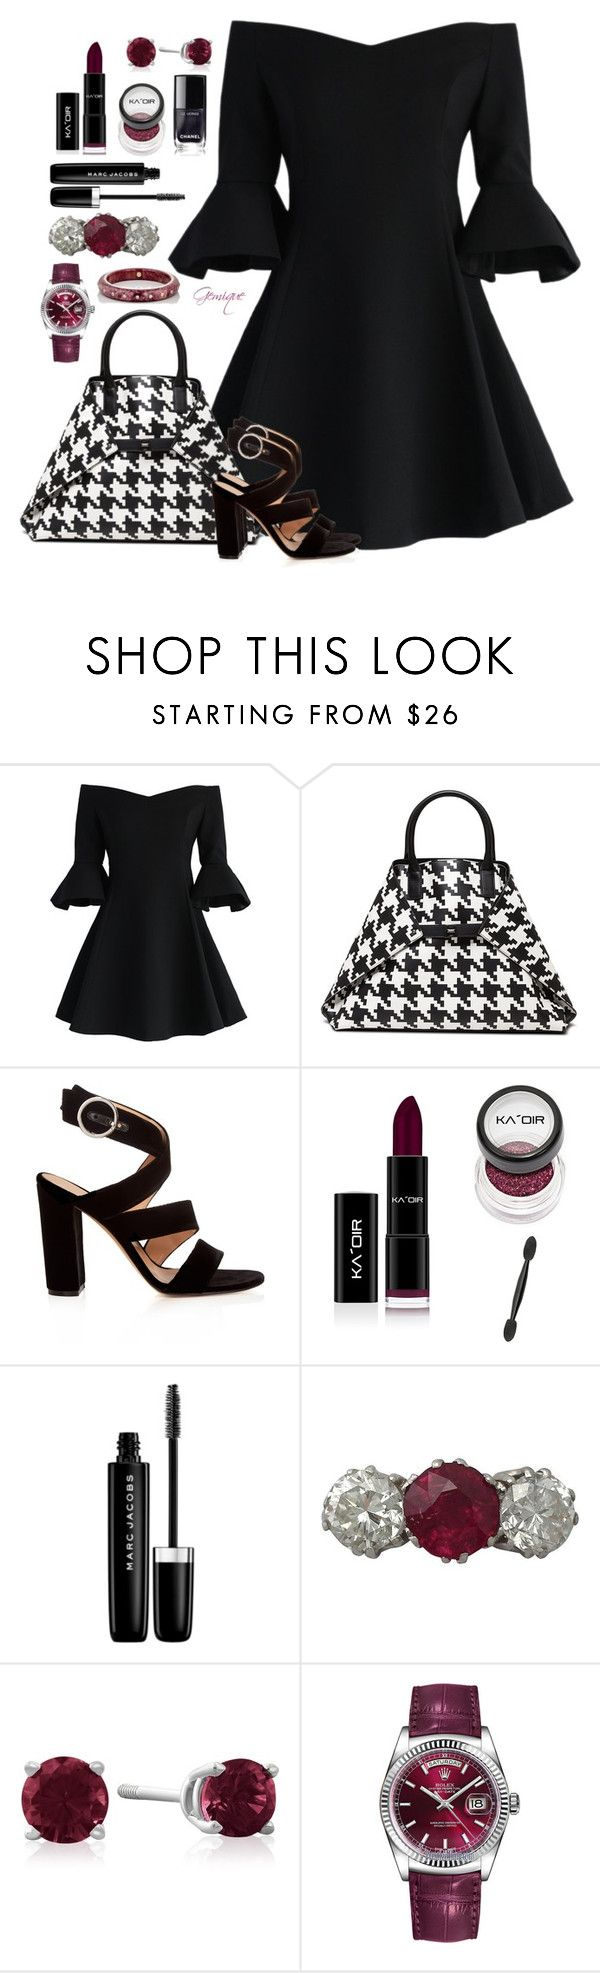 """Untitled #2102"" by gemique ❤ liked on Polyvore featuring Chicwish, Akris, Gianvito Rossi, Marc Jacobs, Trilogy, Rolex and Mark Davis"